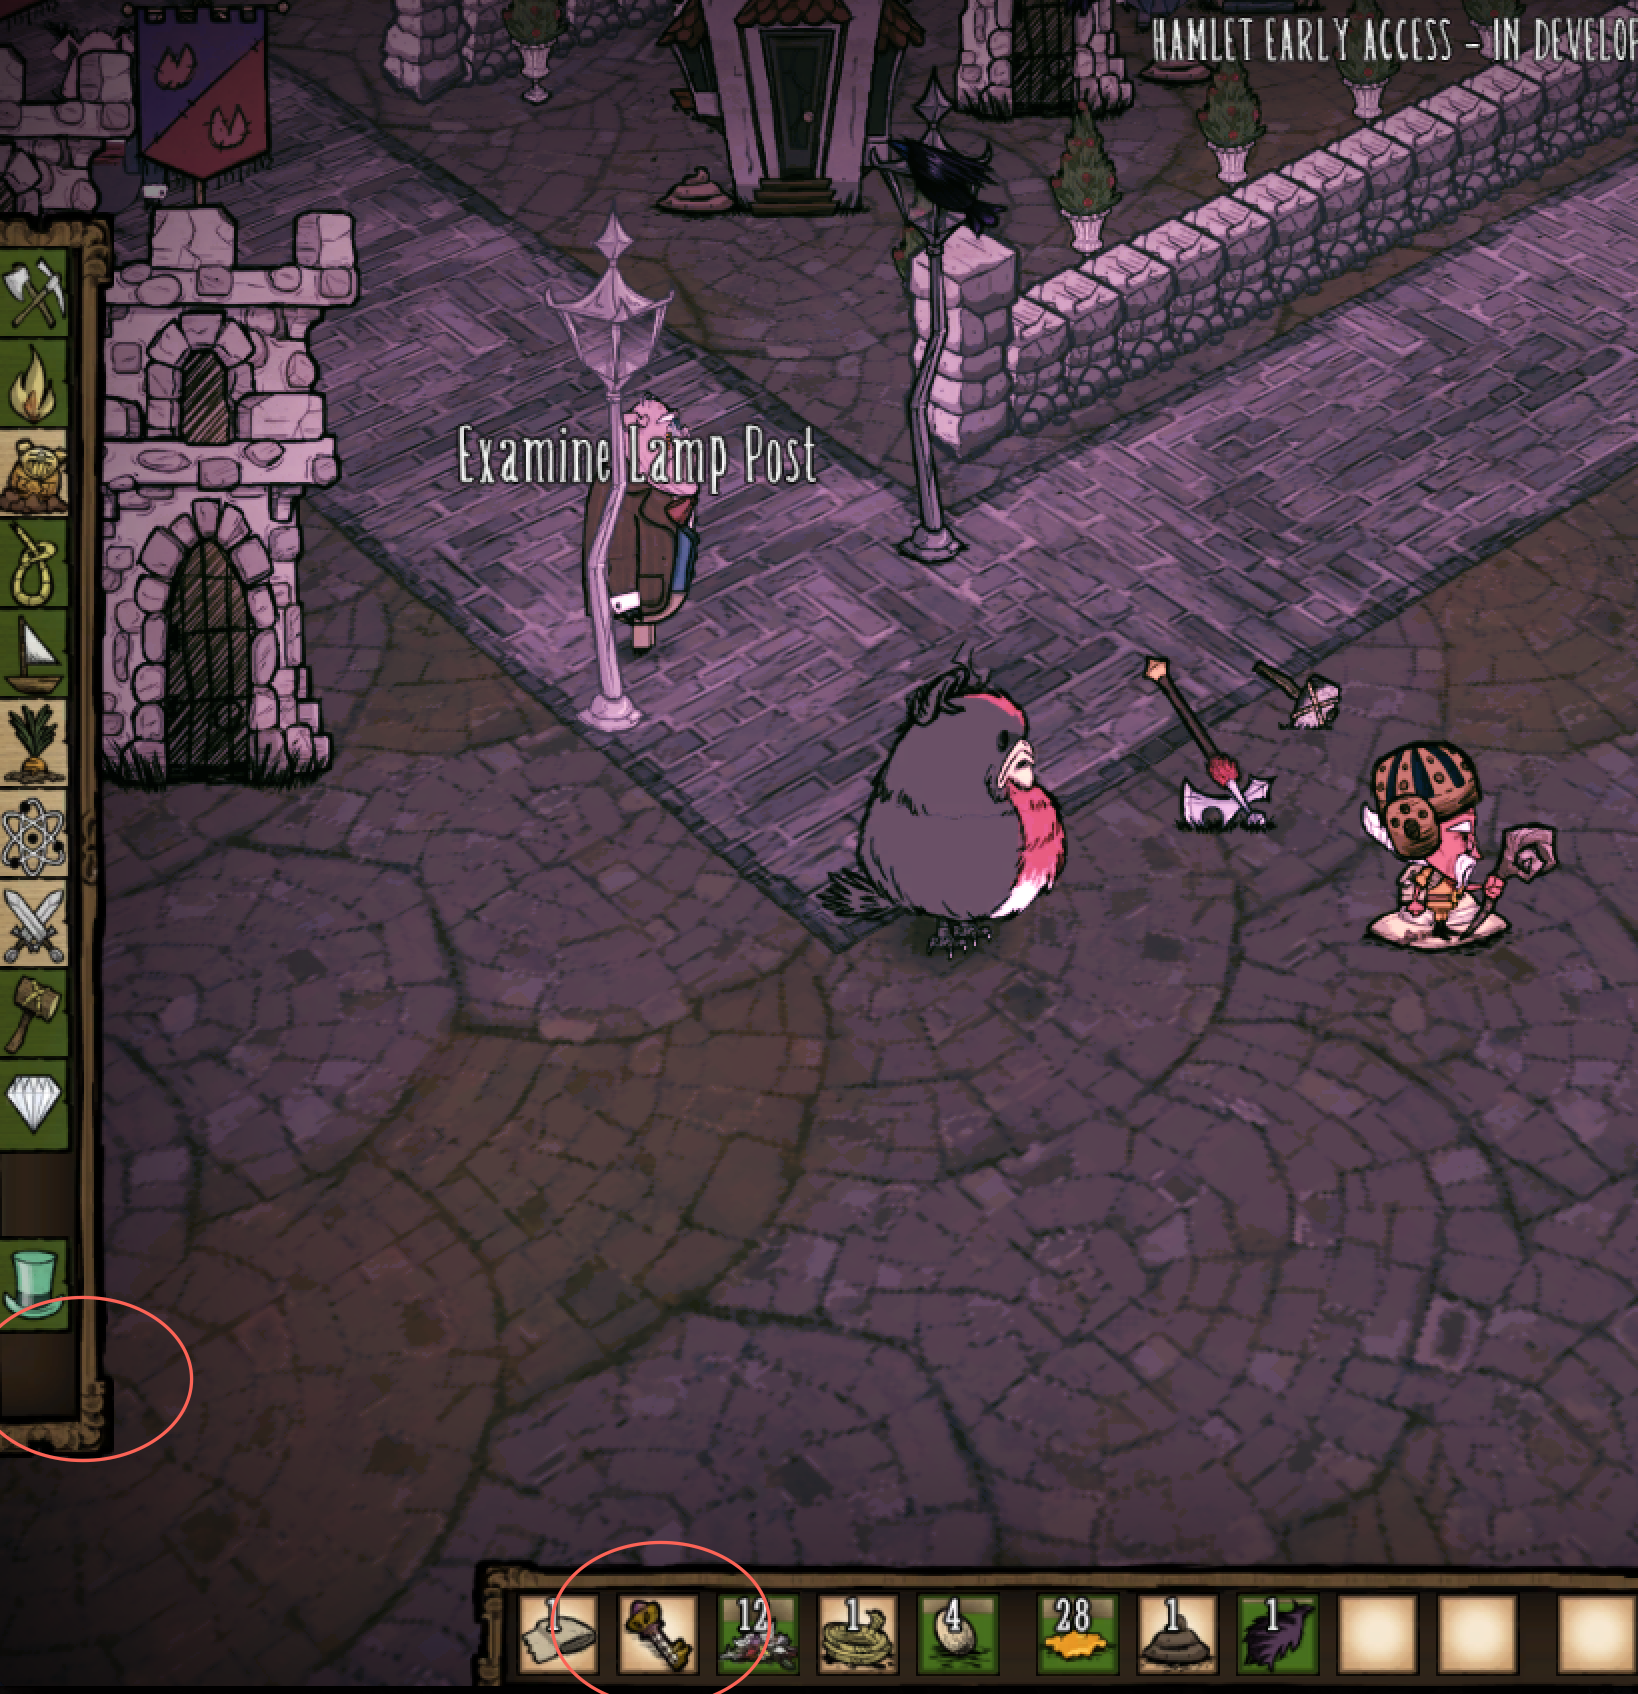 City Planning Tab disappear - Don't Starve: Hamlet Early